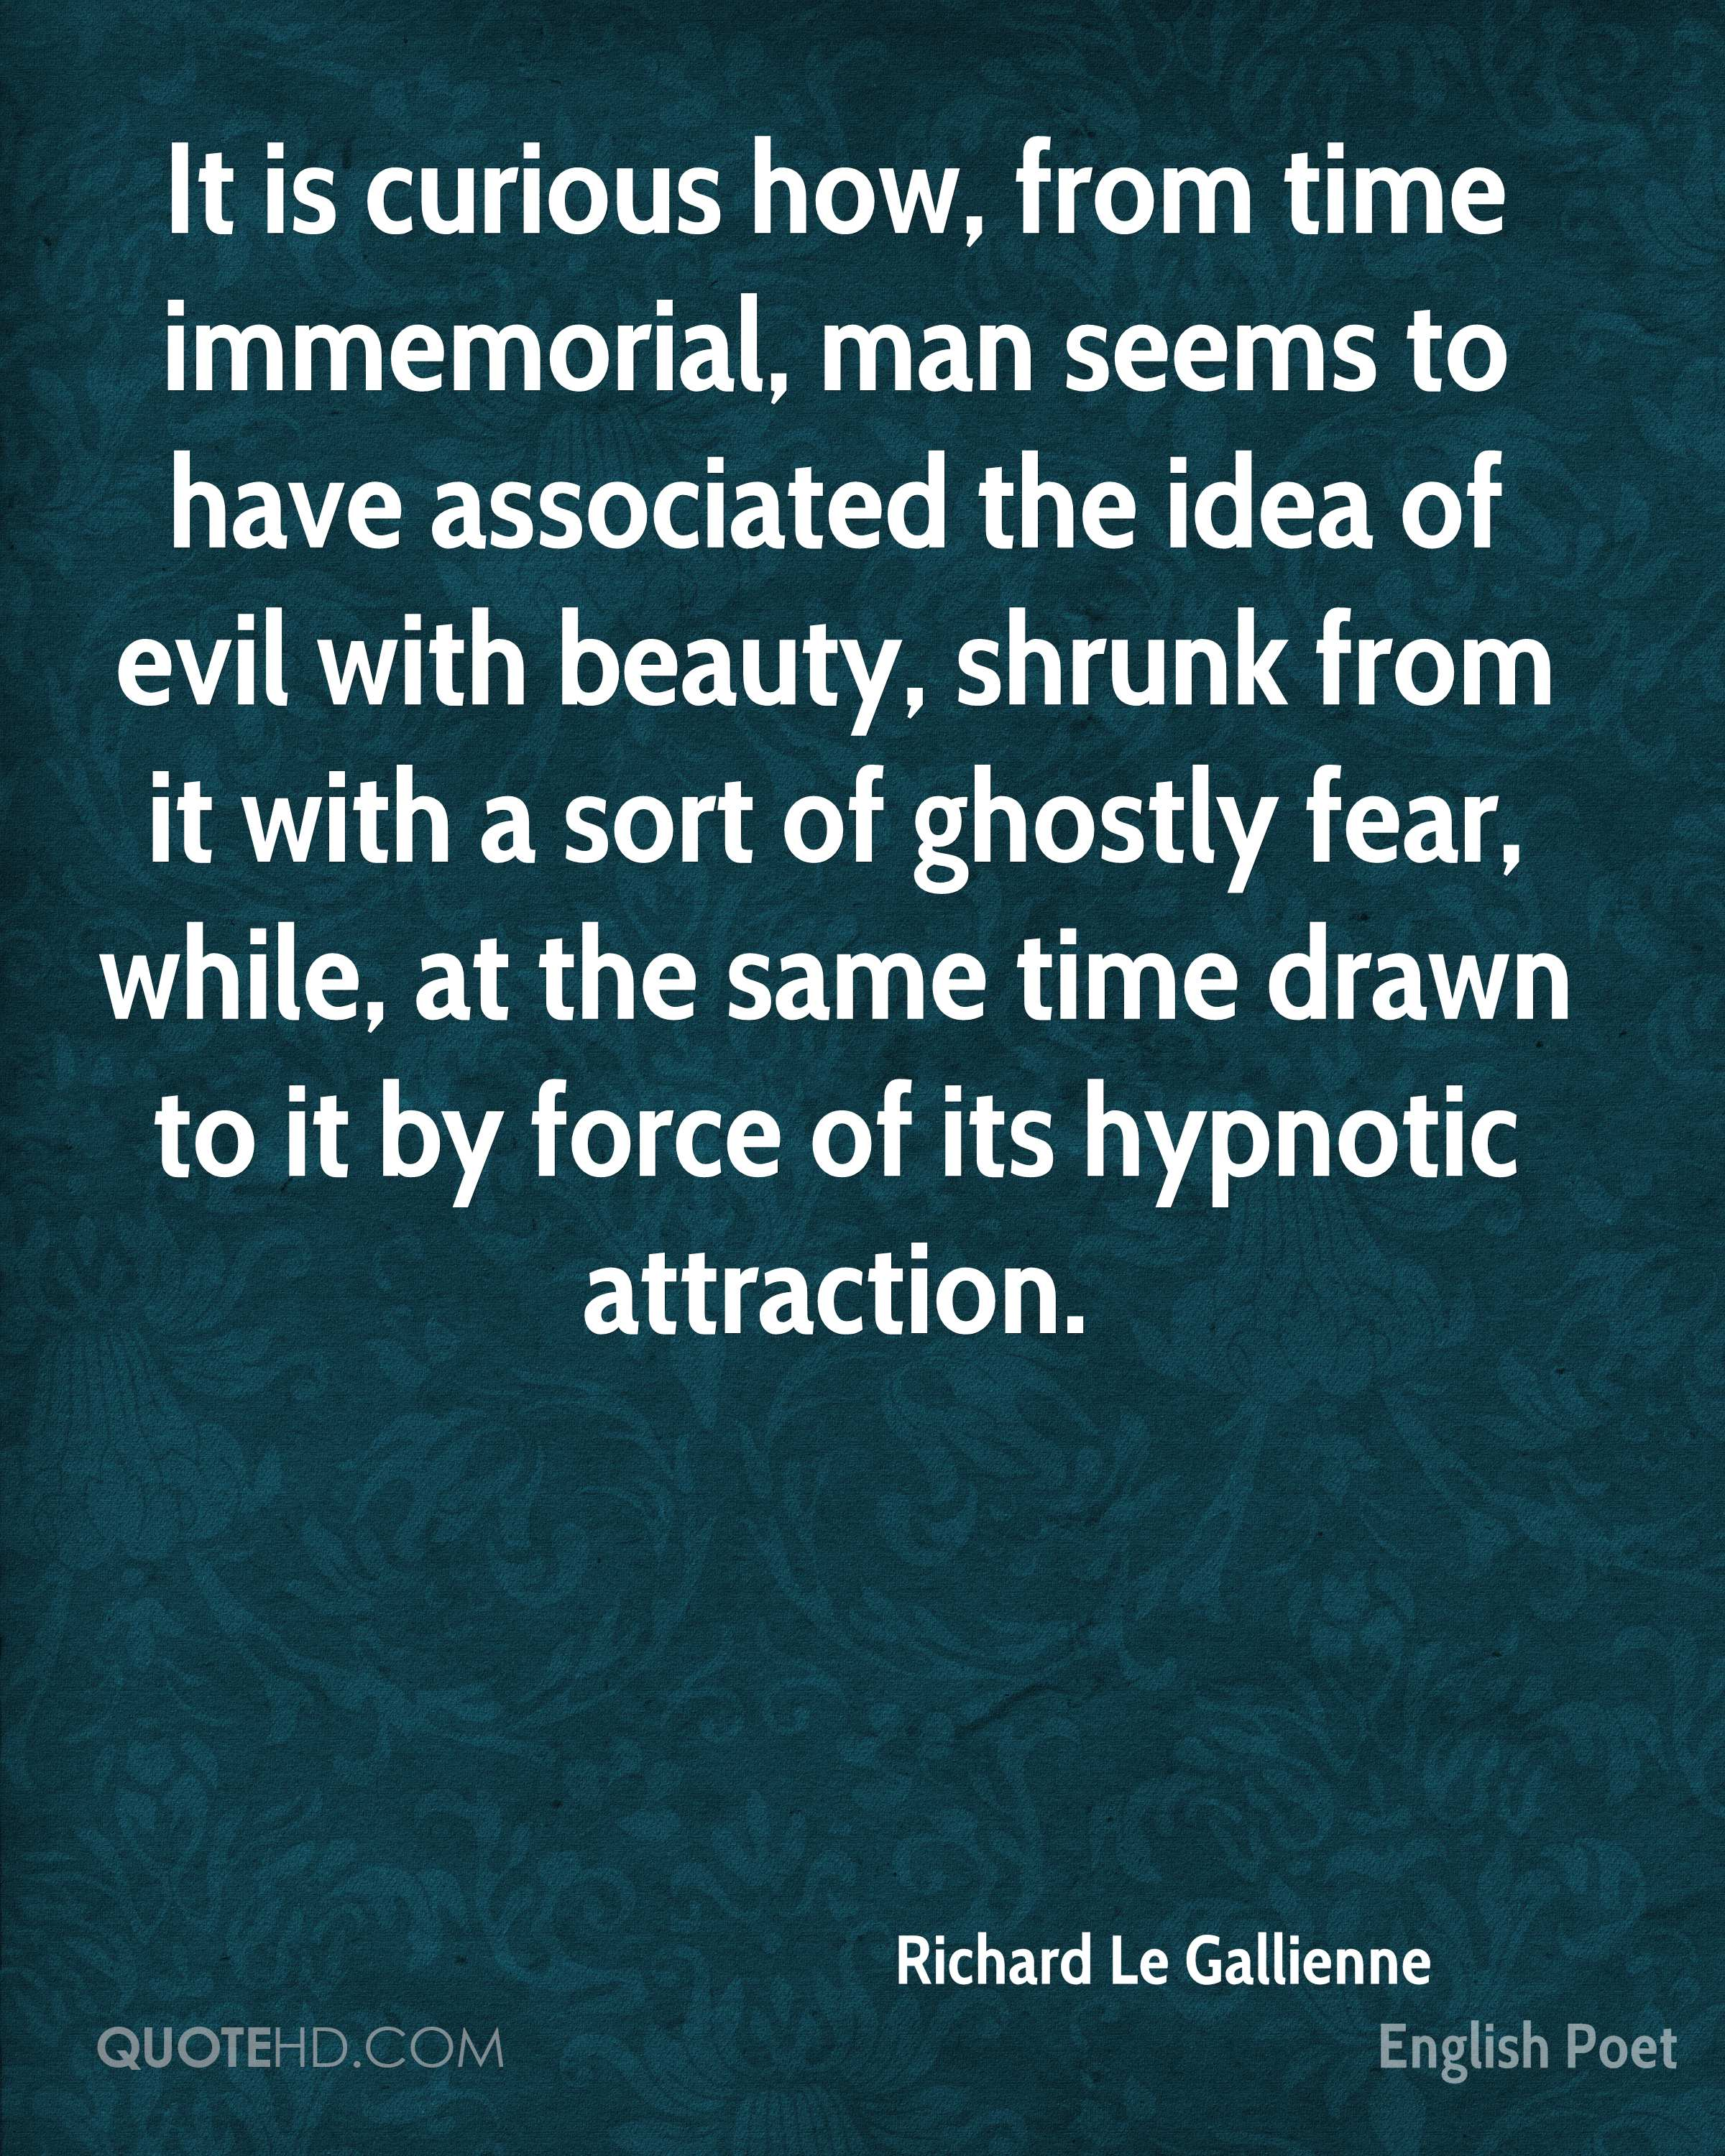 It is curious how, from time immemorial, man seems to have associated the idea of evil with beauty, shrunk from it with a sort of ghostly fear, while, at the same time drawn to it by force of its hypnotic attraction.